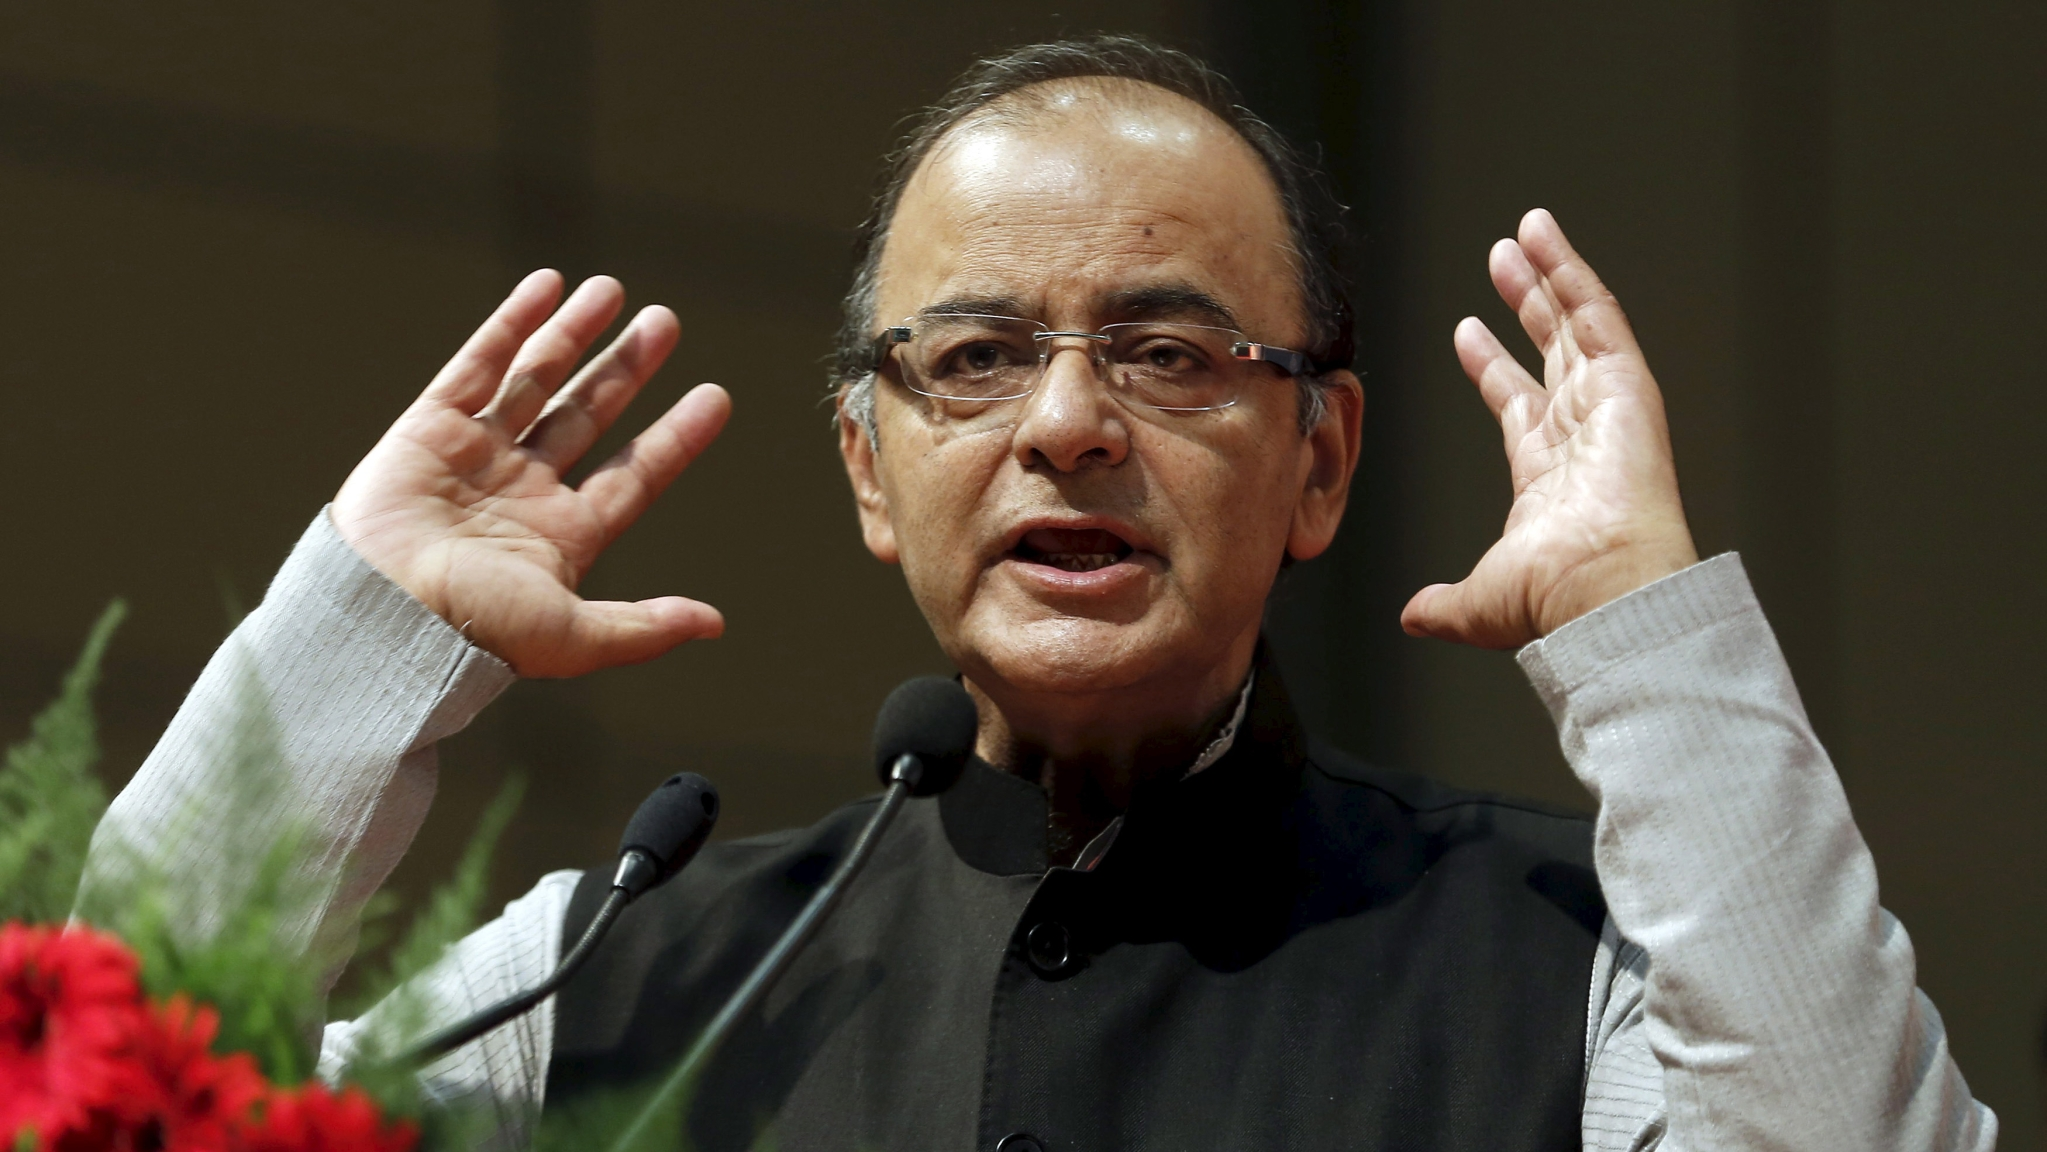 Political Stability, Strong Leadership Will Ensure Growth: Jaitley